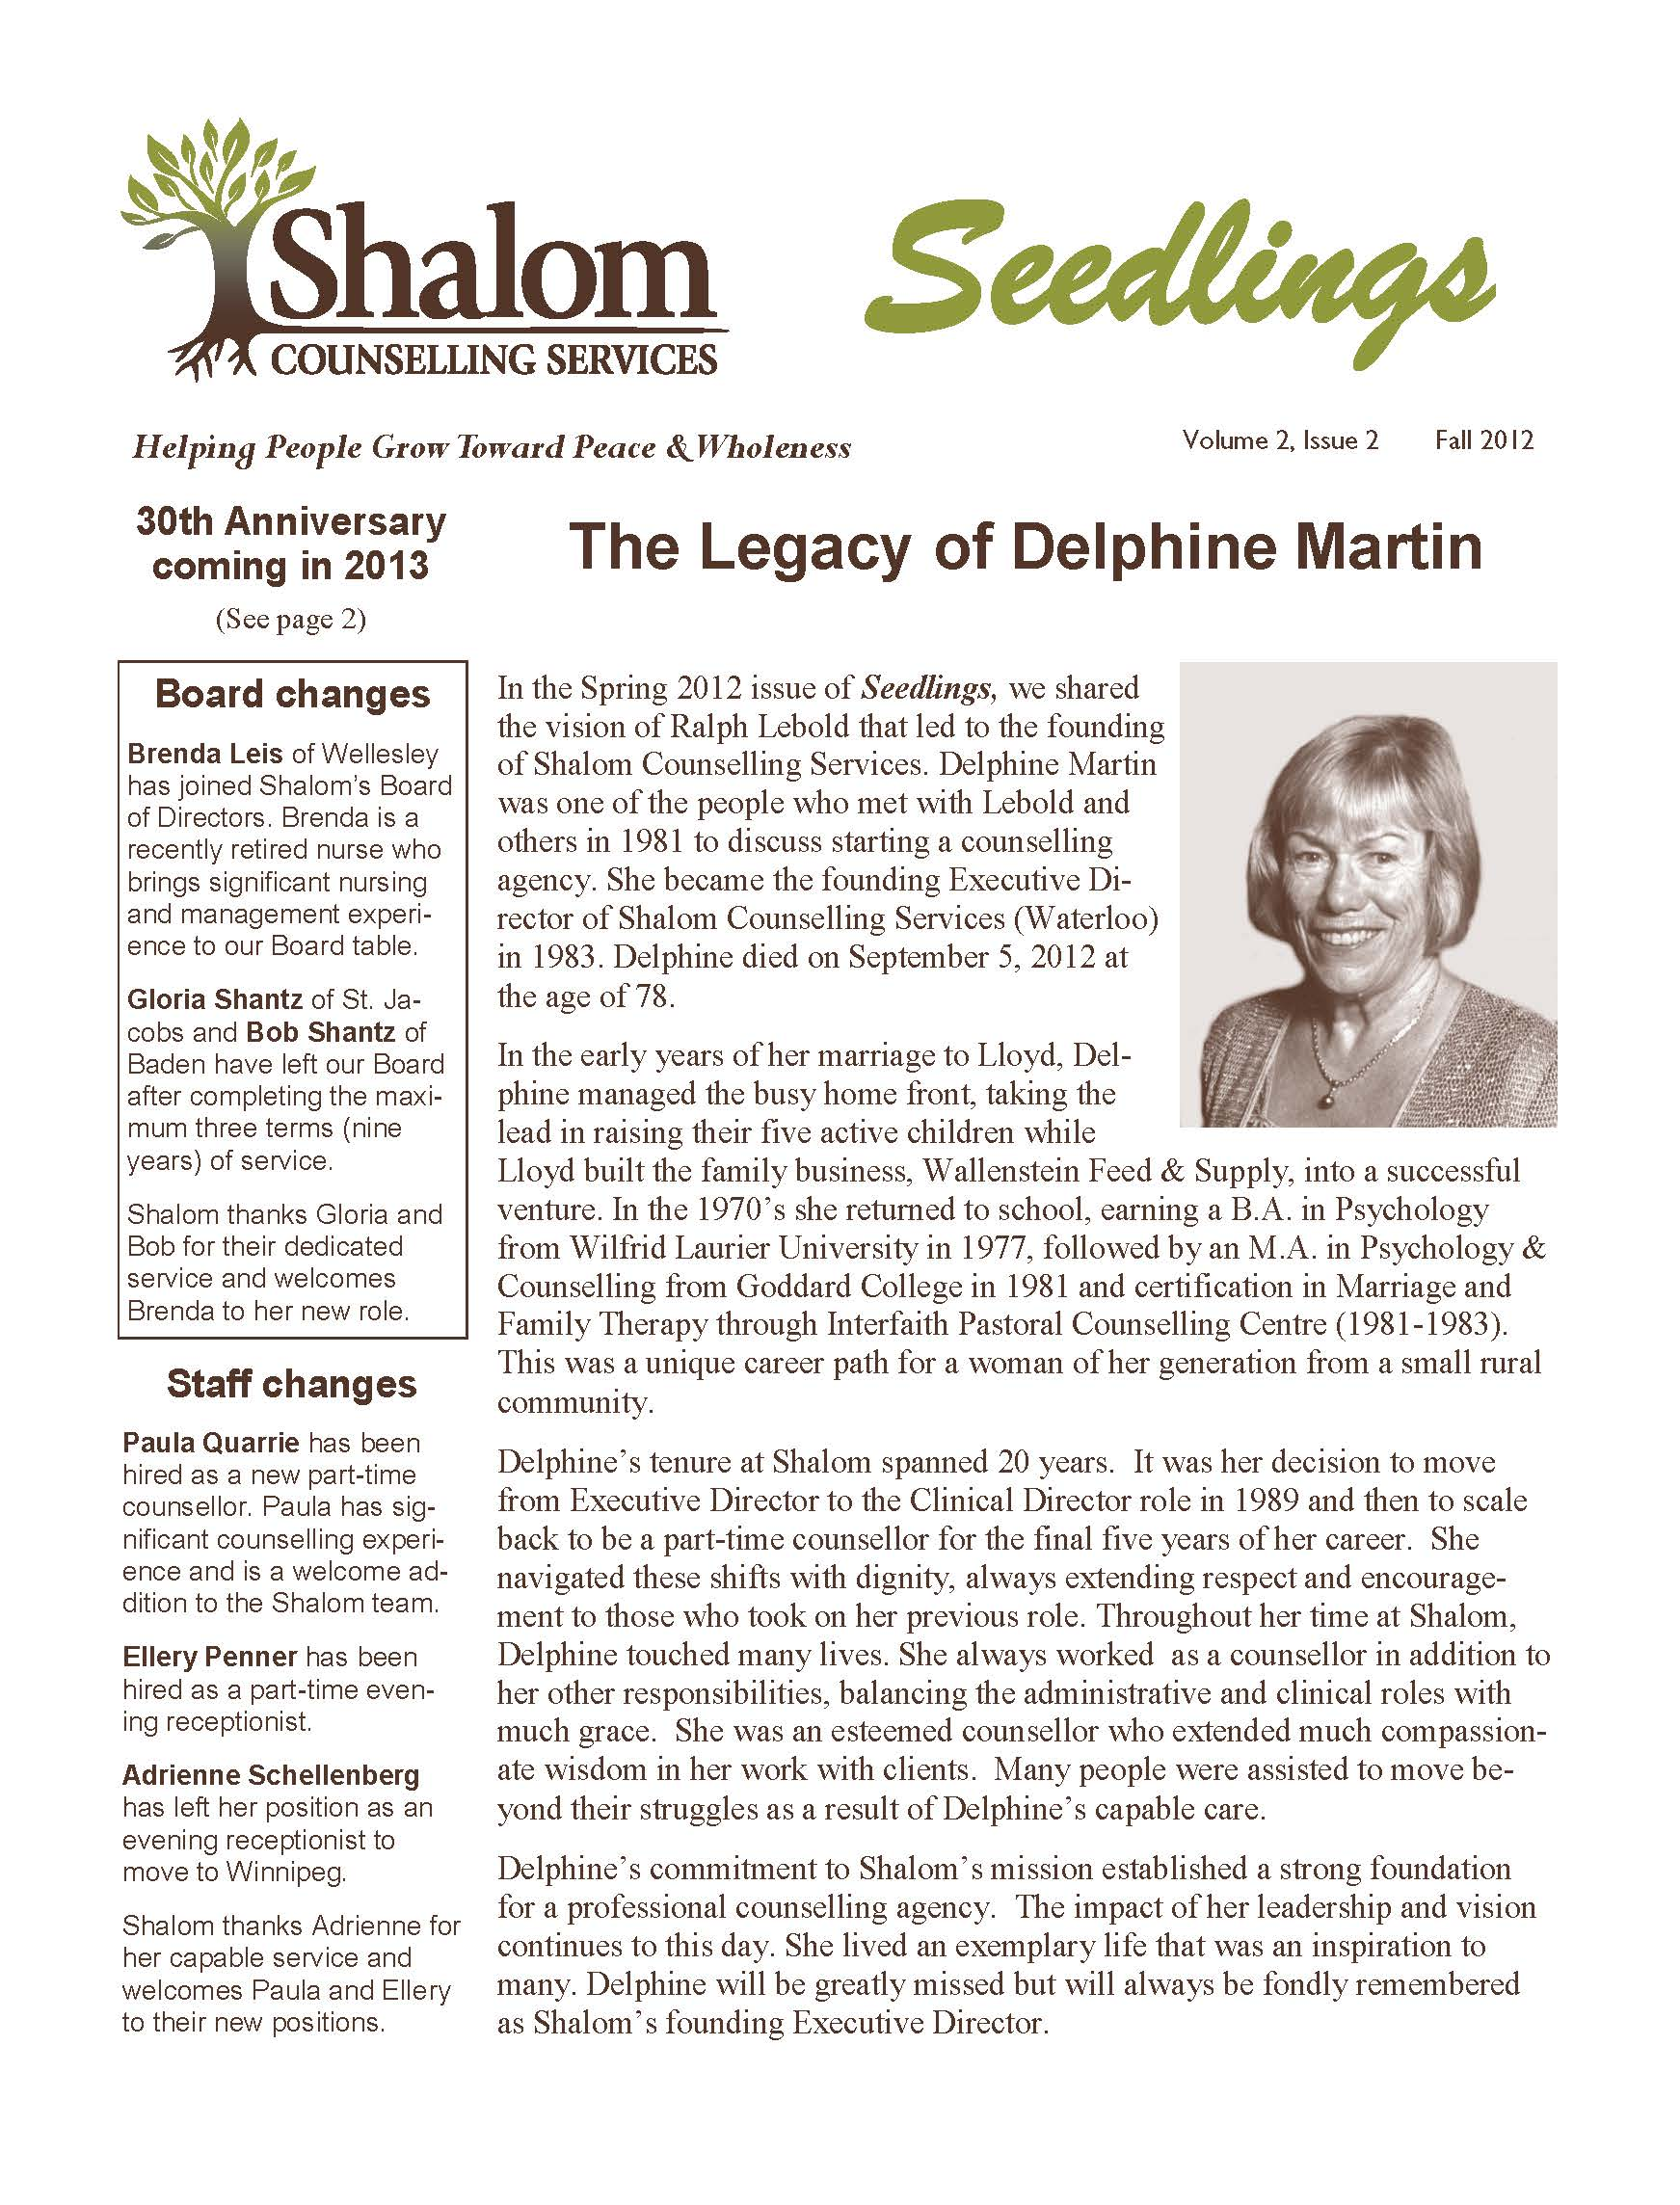 Fall 2012 Seedlings Newsletter